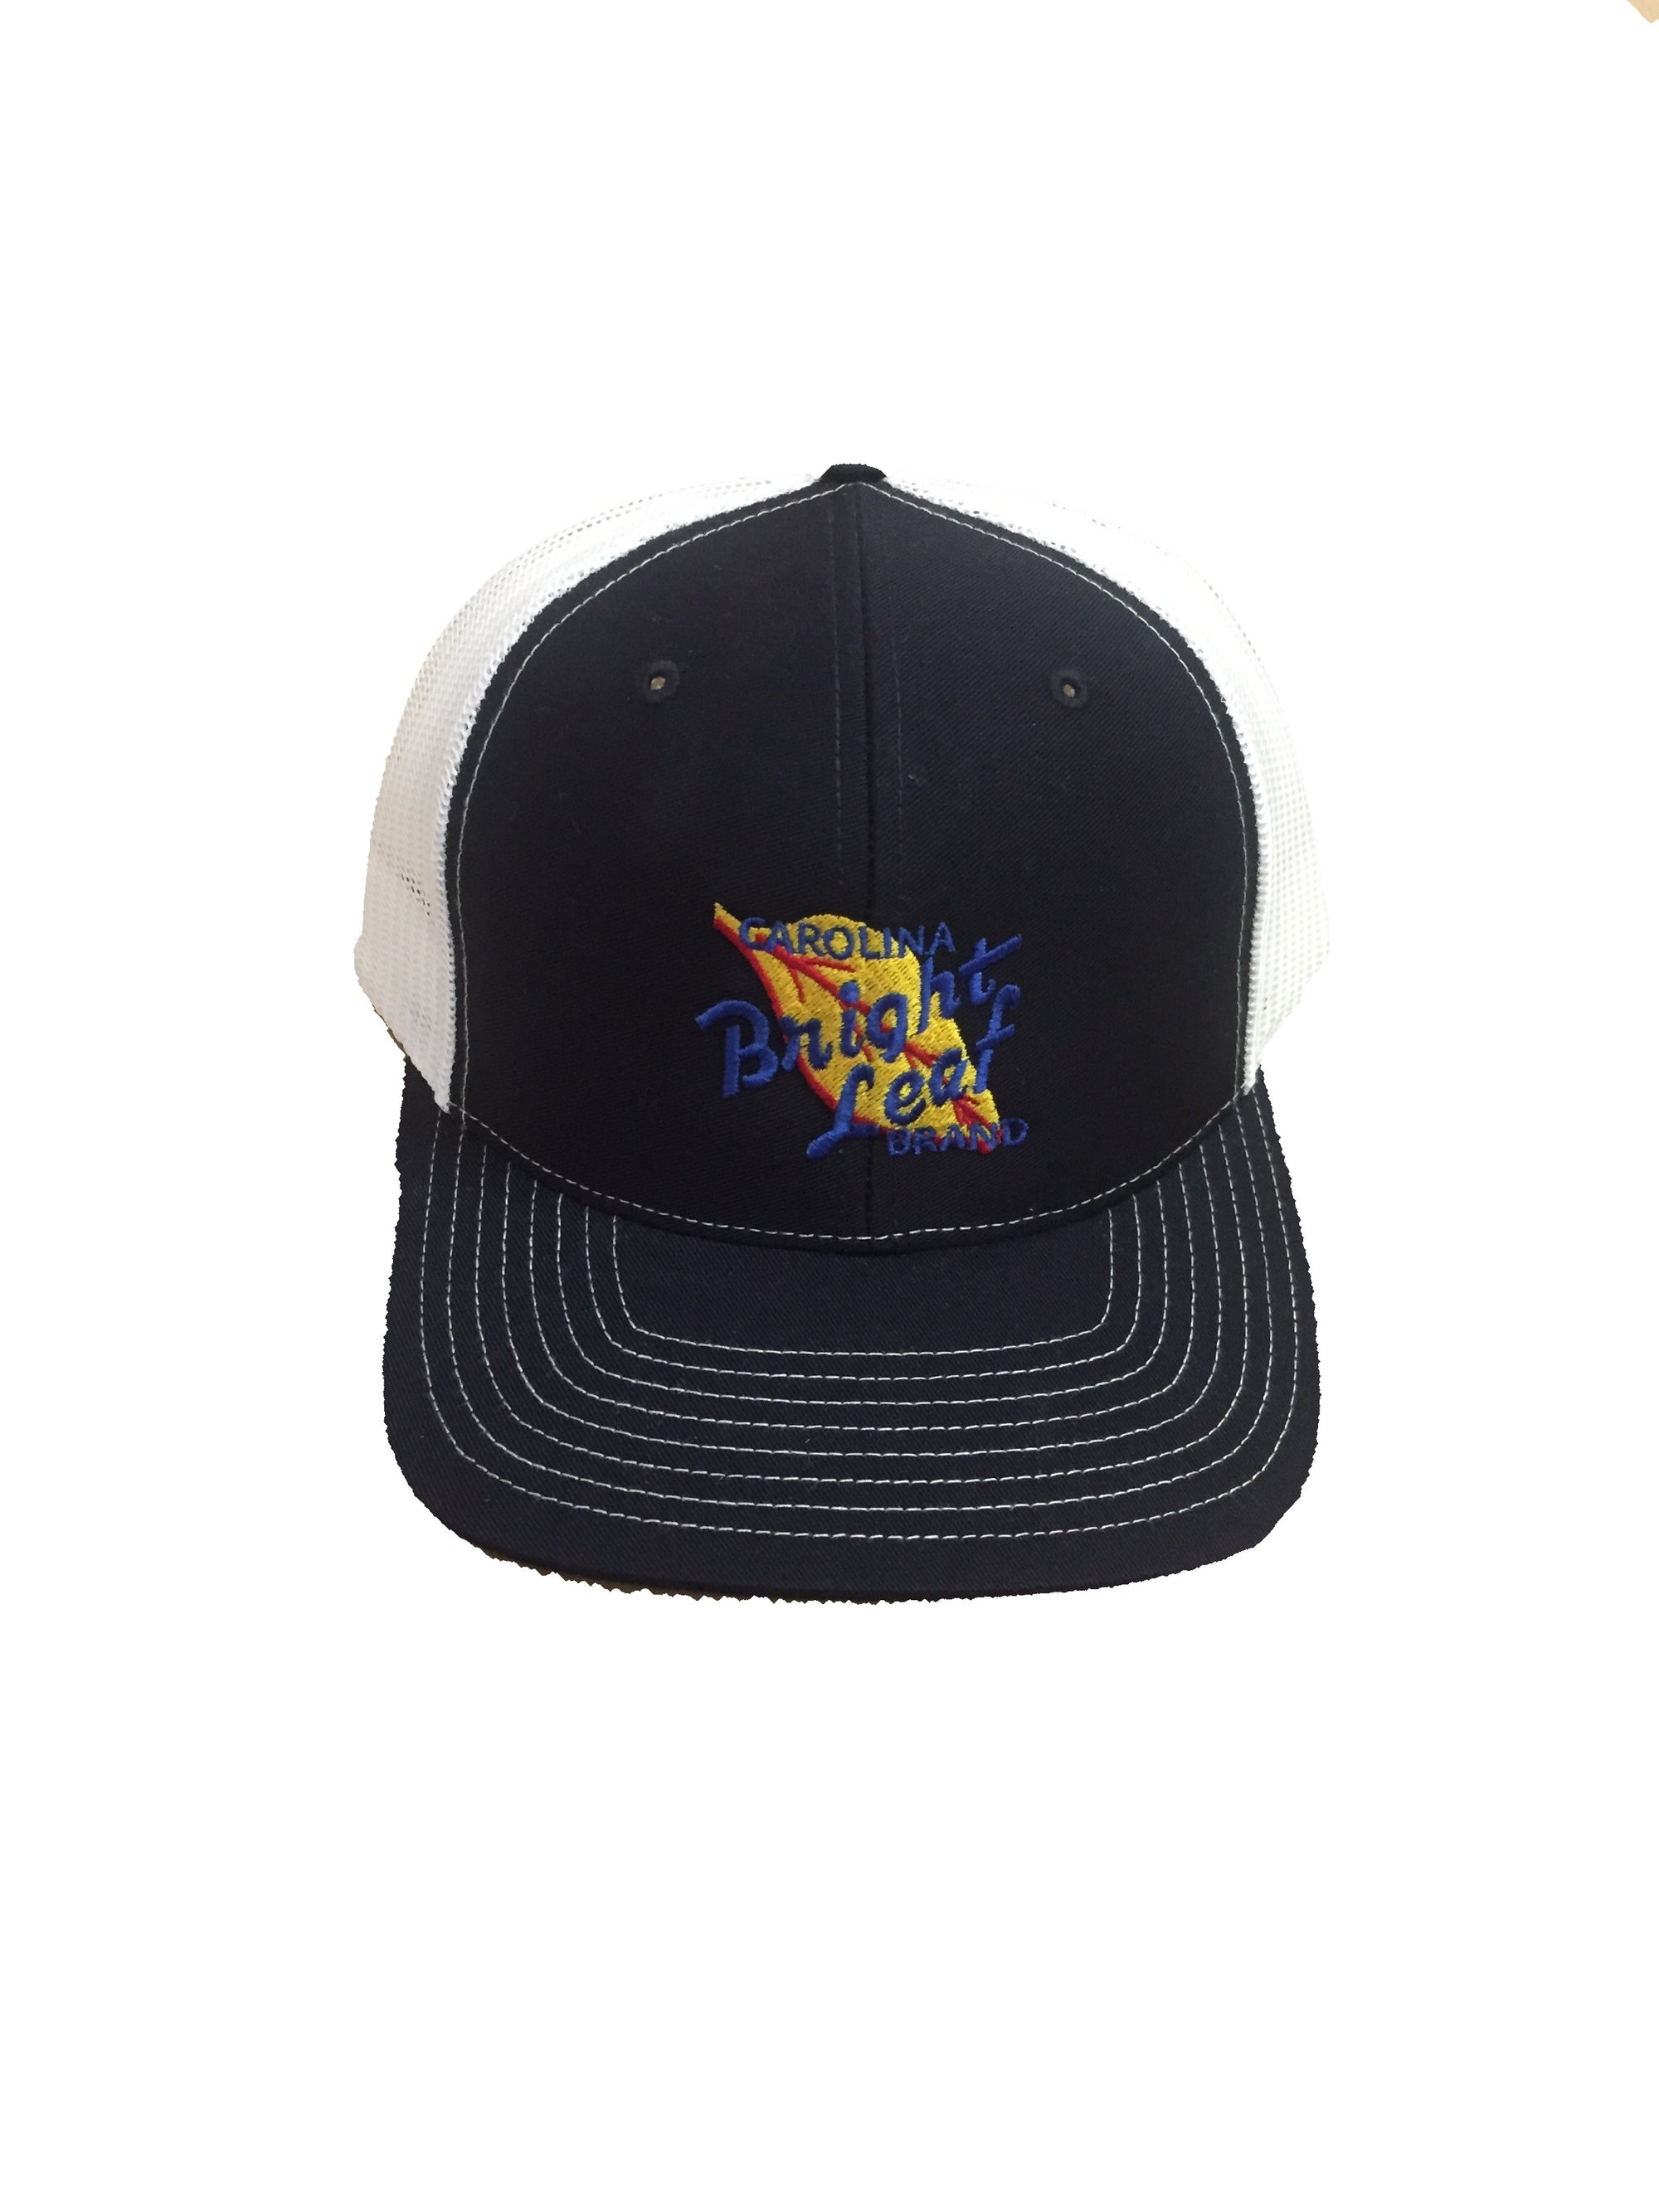 Navy Blue / White Mesh Snapback Hat